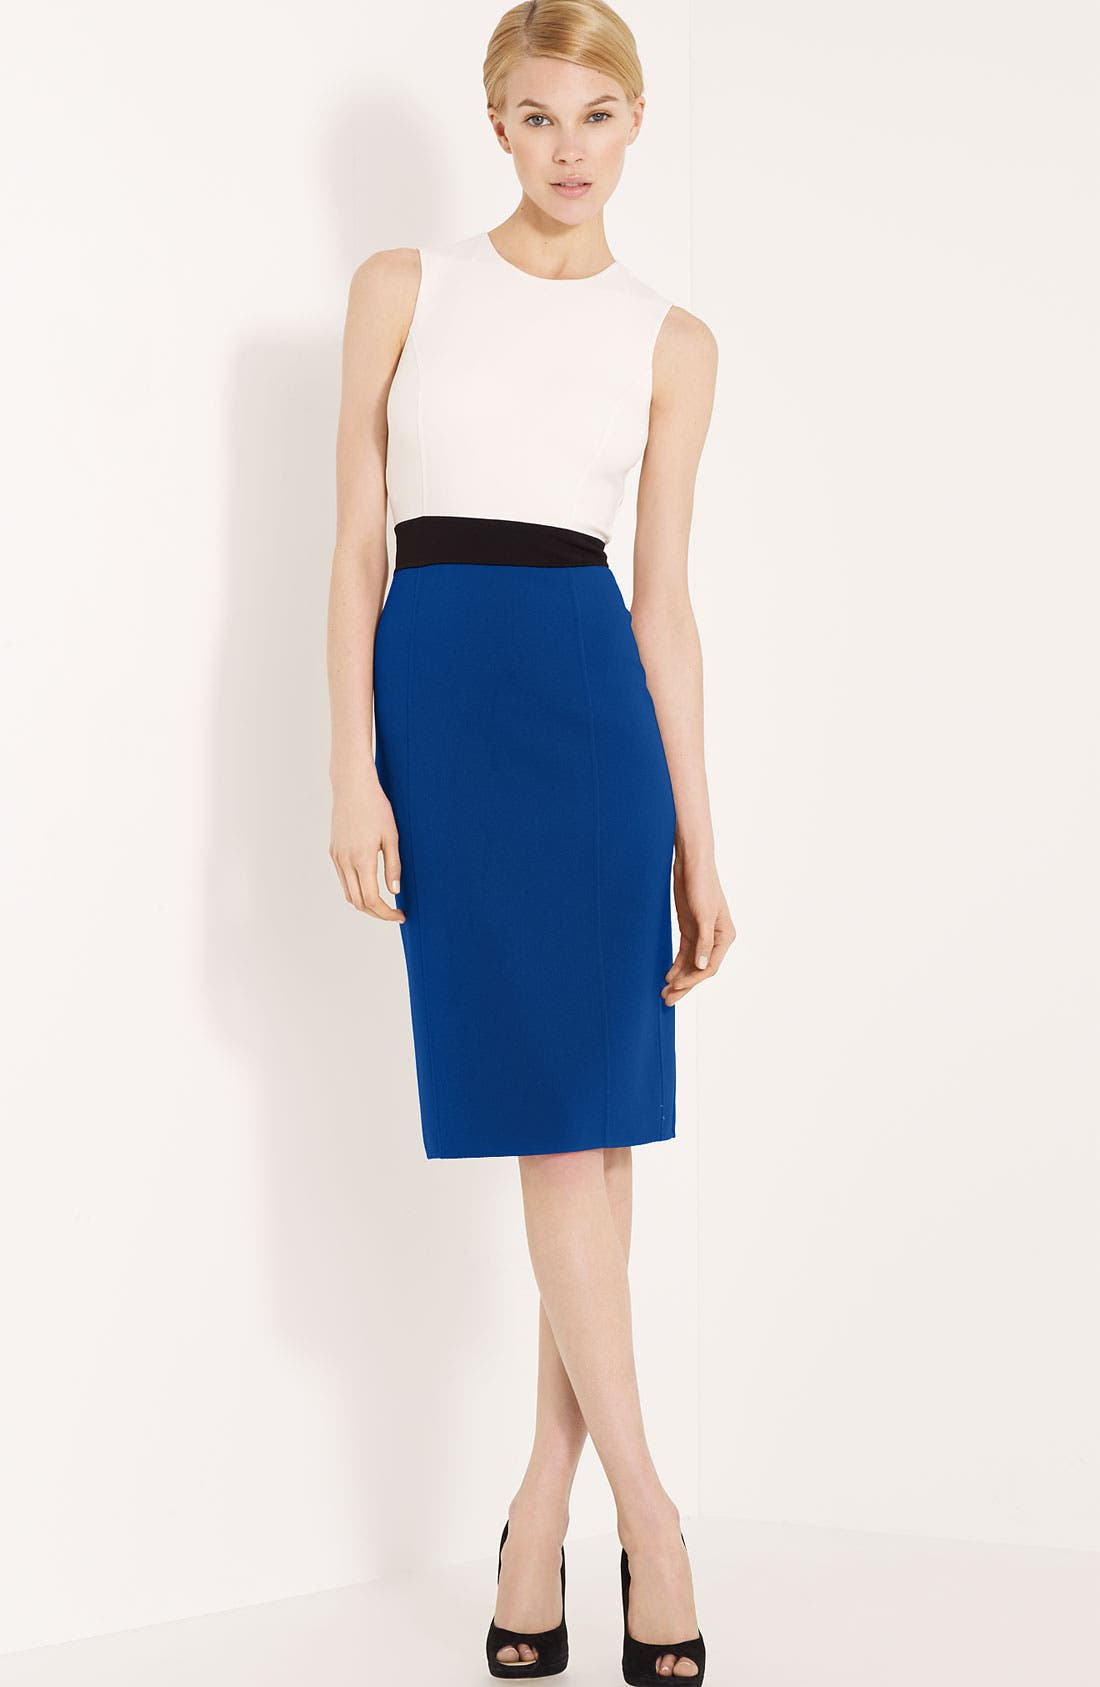 Alternate Image 1 Selected - Michael Kors Colorblock Stretch Wool Crepe Dress